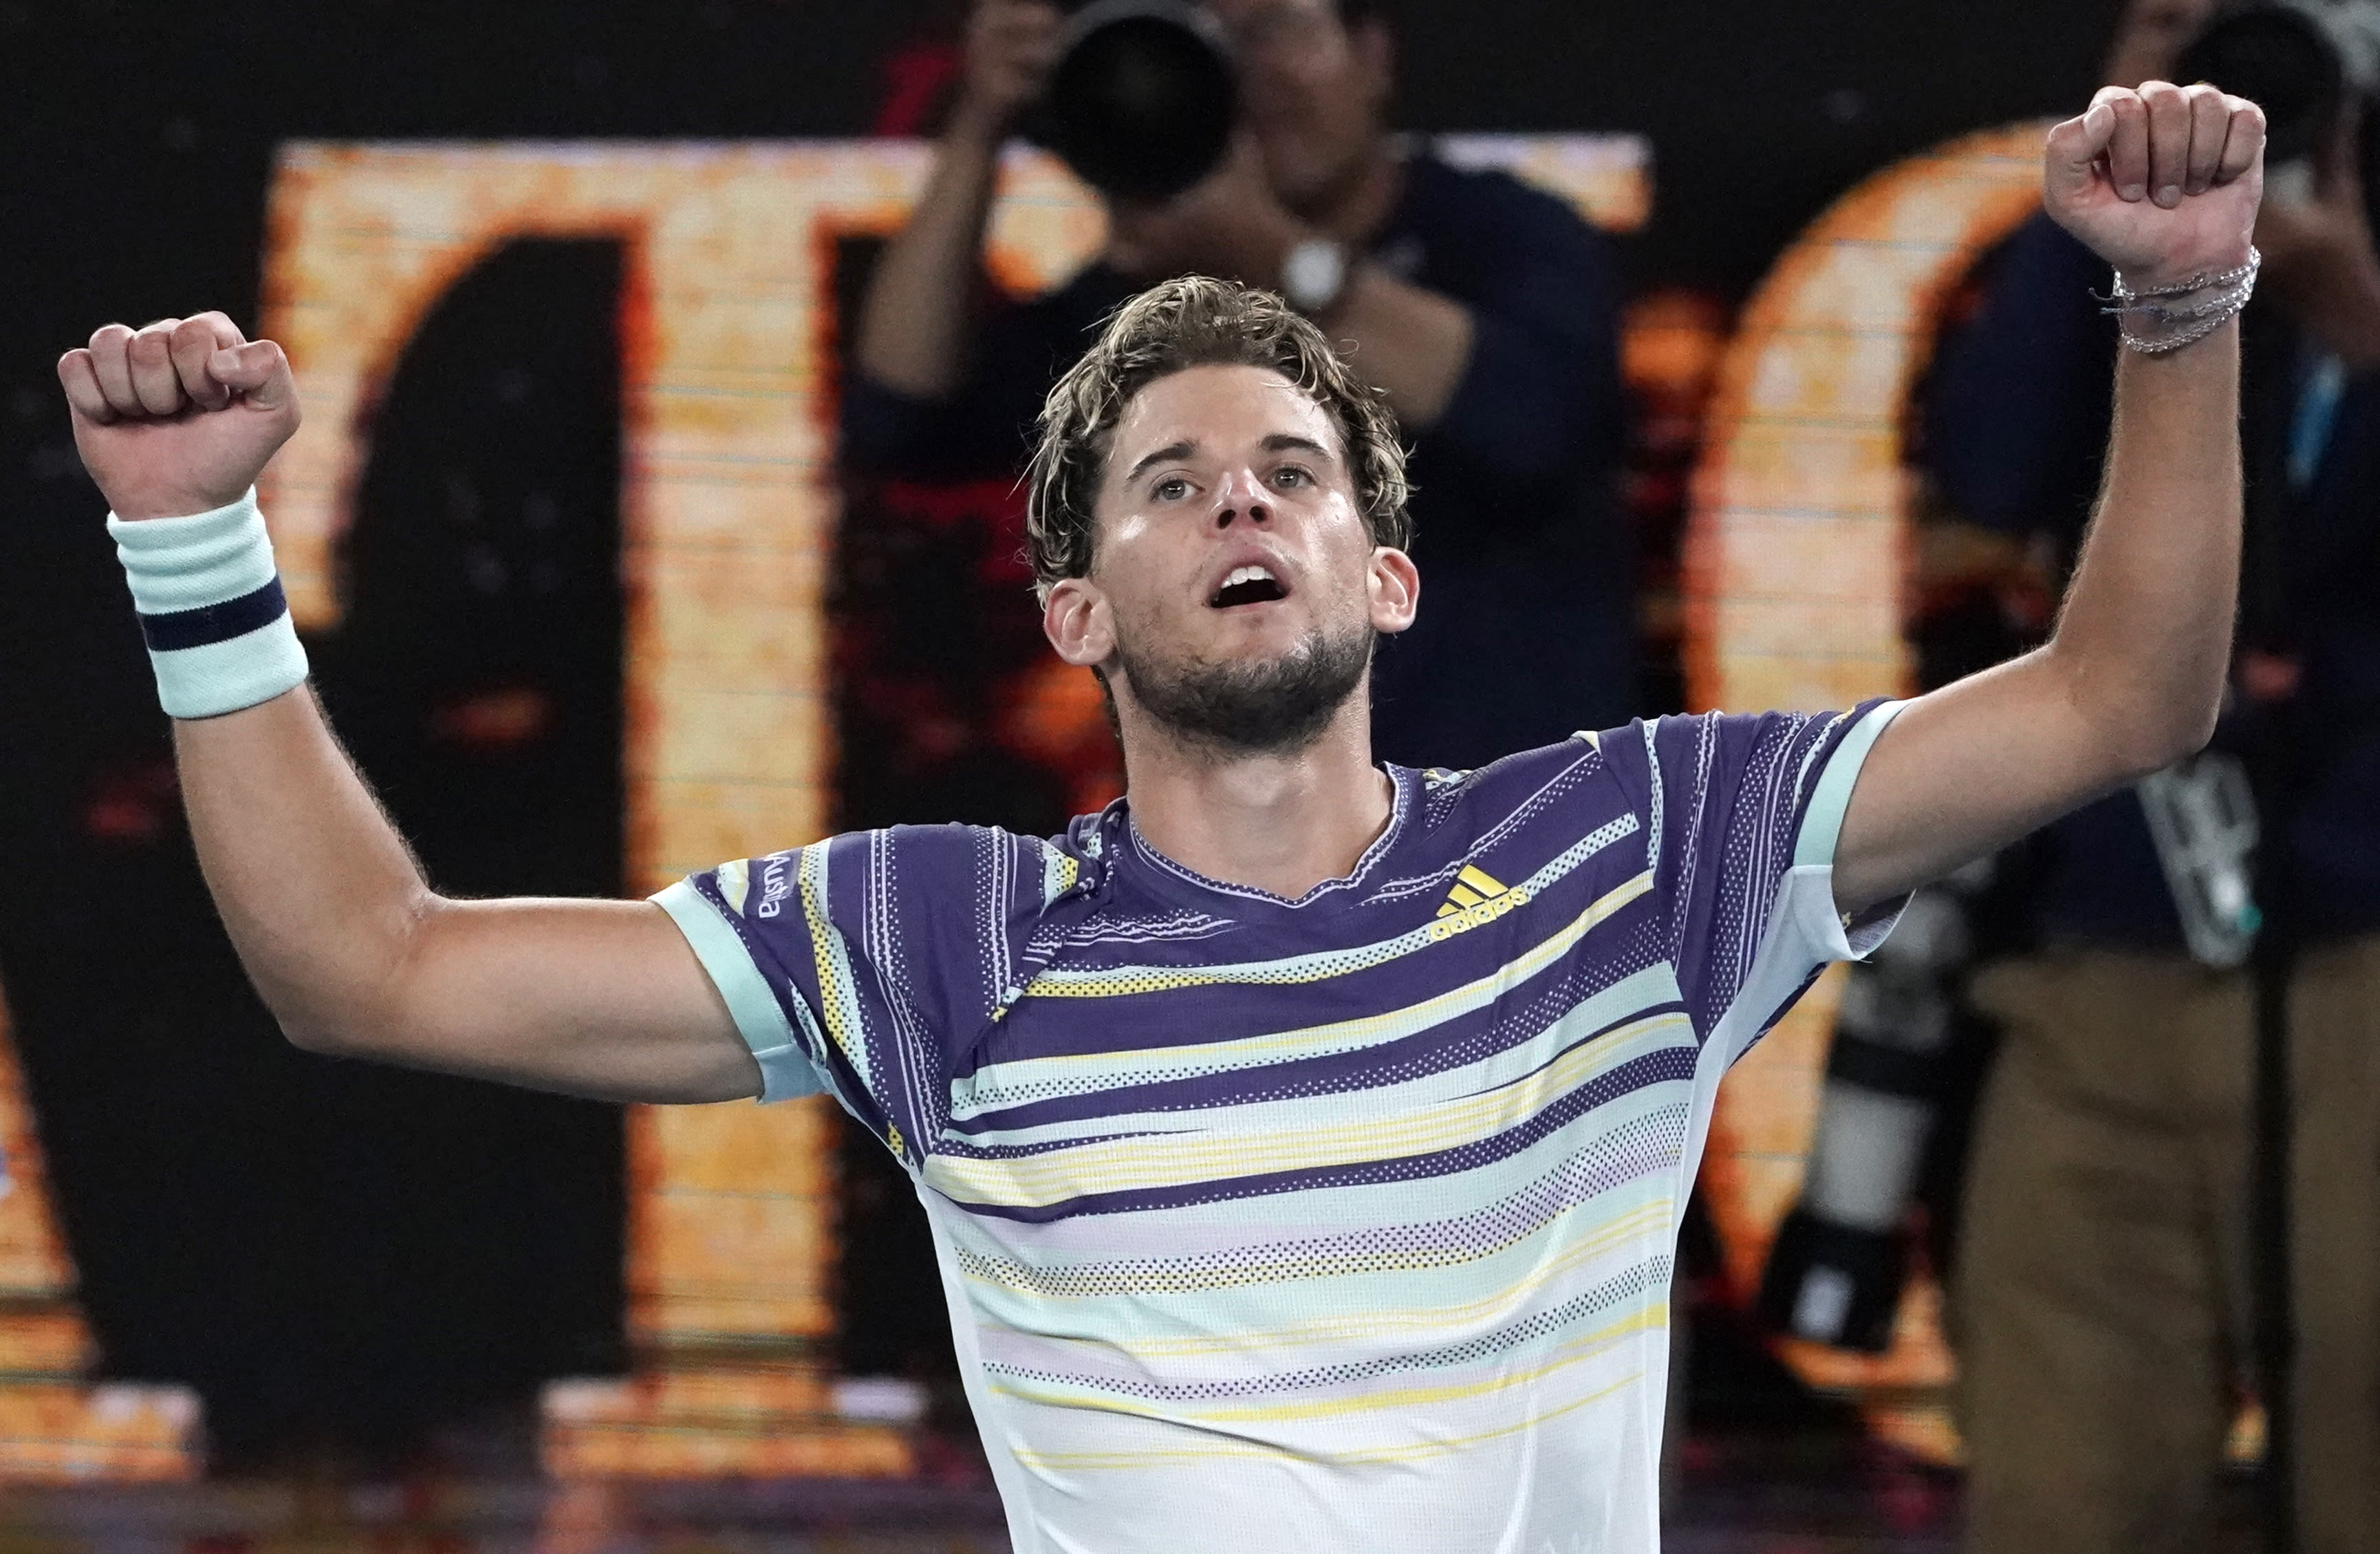 FILE - In this Jan. 31, 2020, file photo, Austria's Dominic Thiem celebrates after defeating Germany's Alexander Zverev in their semifinal match at the Australian Open tennis championship in Melbourne, Australia. Thiem is scheduled to play in the U.S. Open, scheduled for Aug. 31-Sept. 13, 2020.(AP Photo/Lee Jin-man, File)